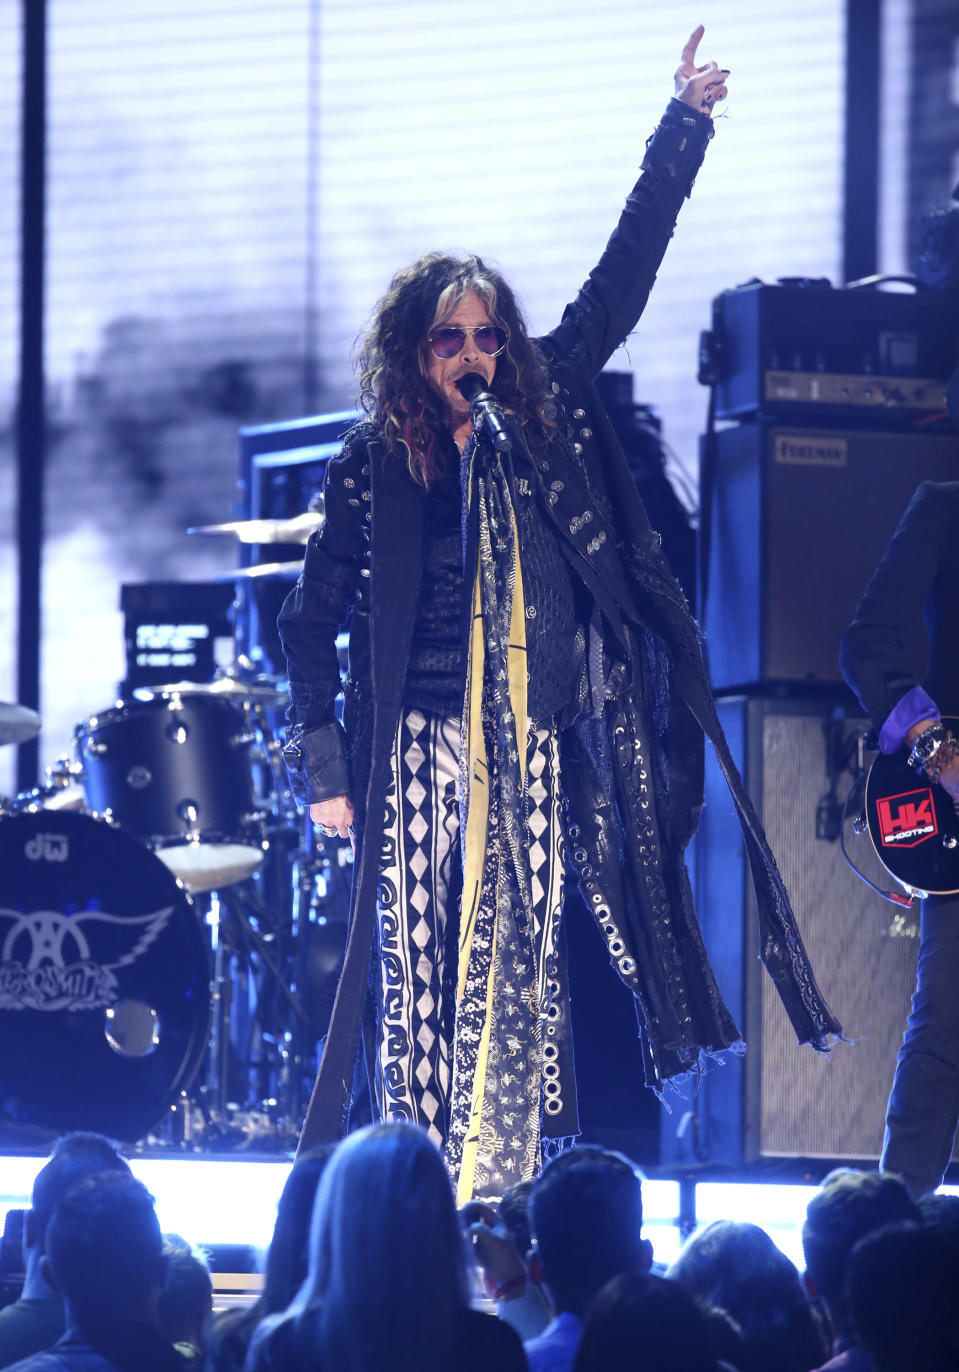 Steven Tyler, of the musical group Aerosmith, performs at the 62nd annual Grammy Awards on Sunday, Jan. 26, 2020, in Los Angeles. (Photo by Matt Sayles/Invision/AP)